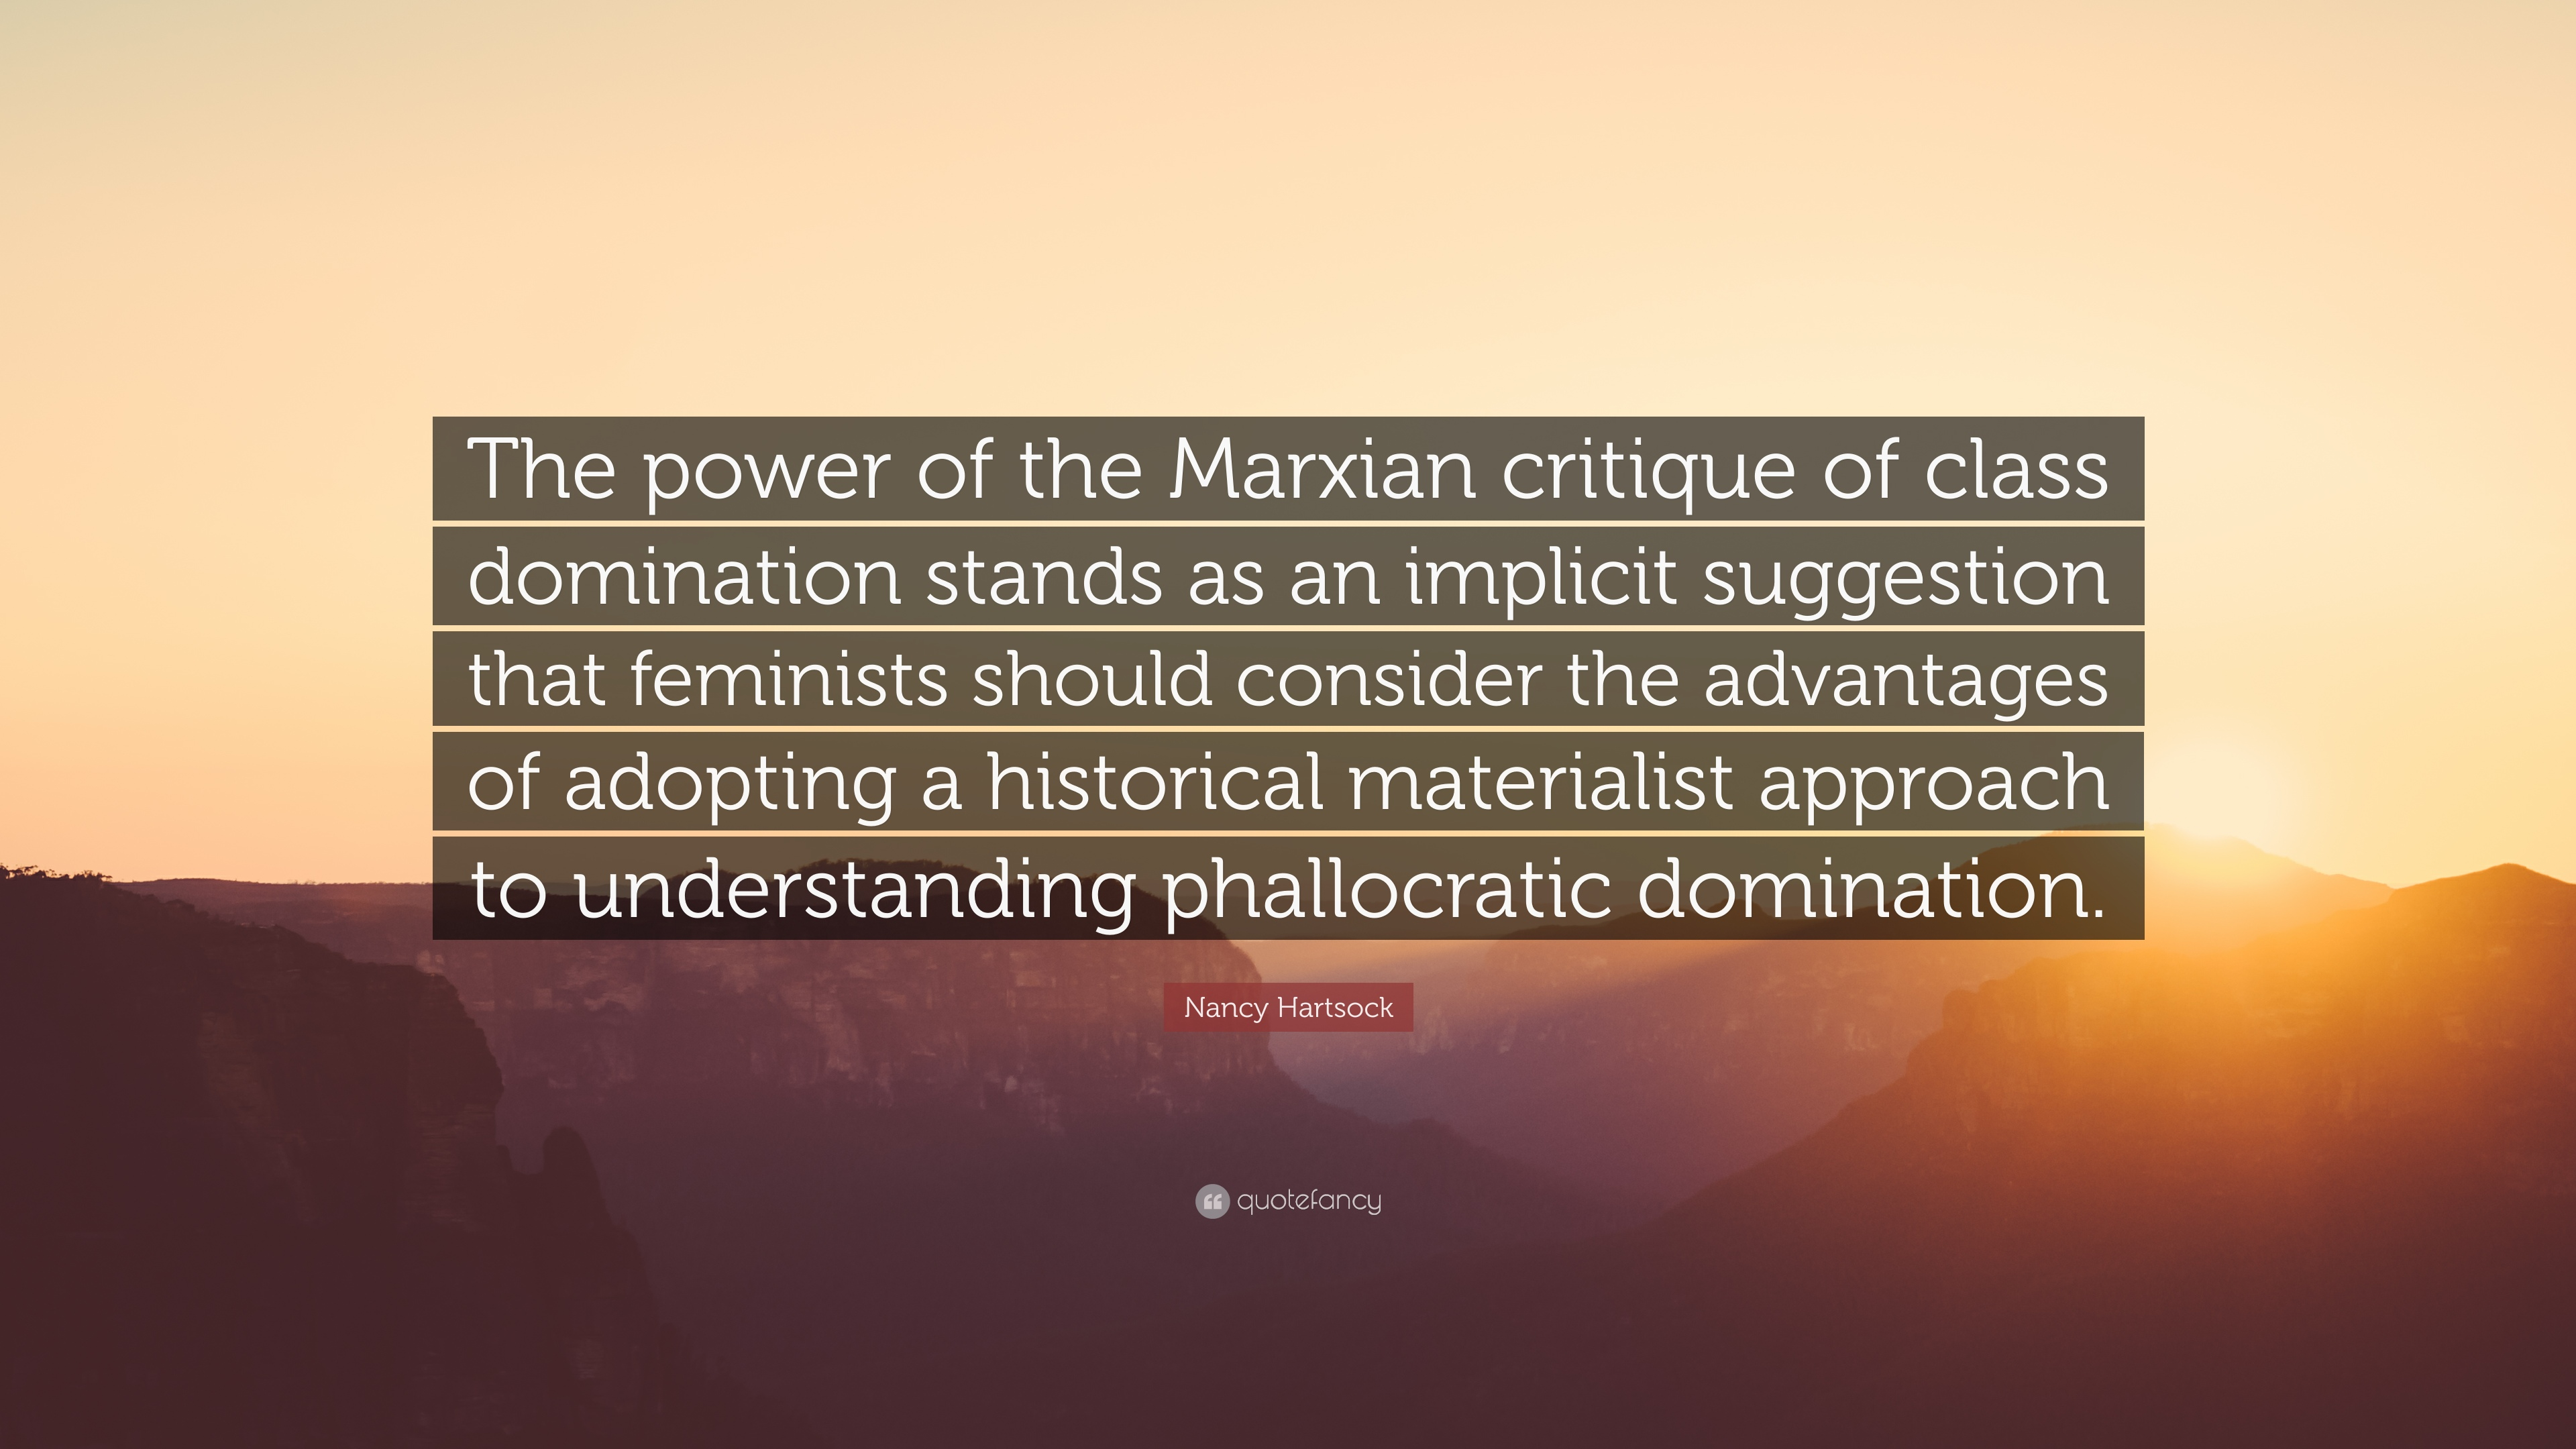 Share Critique of domination can